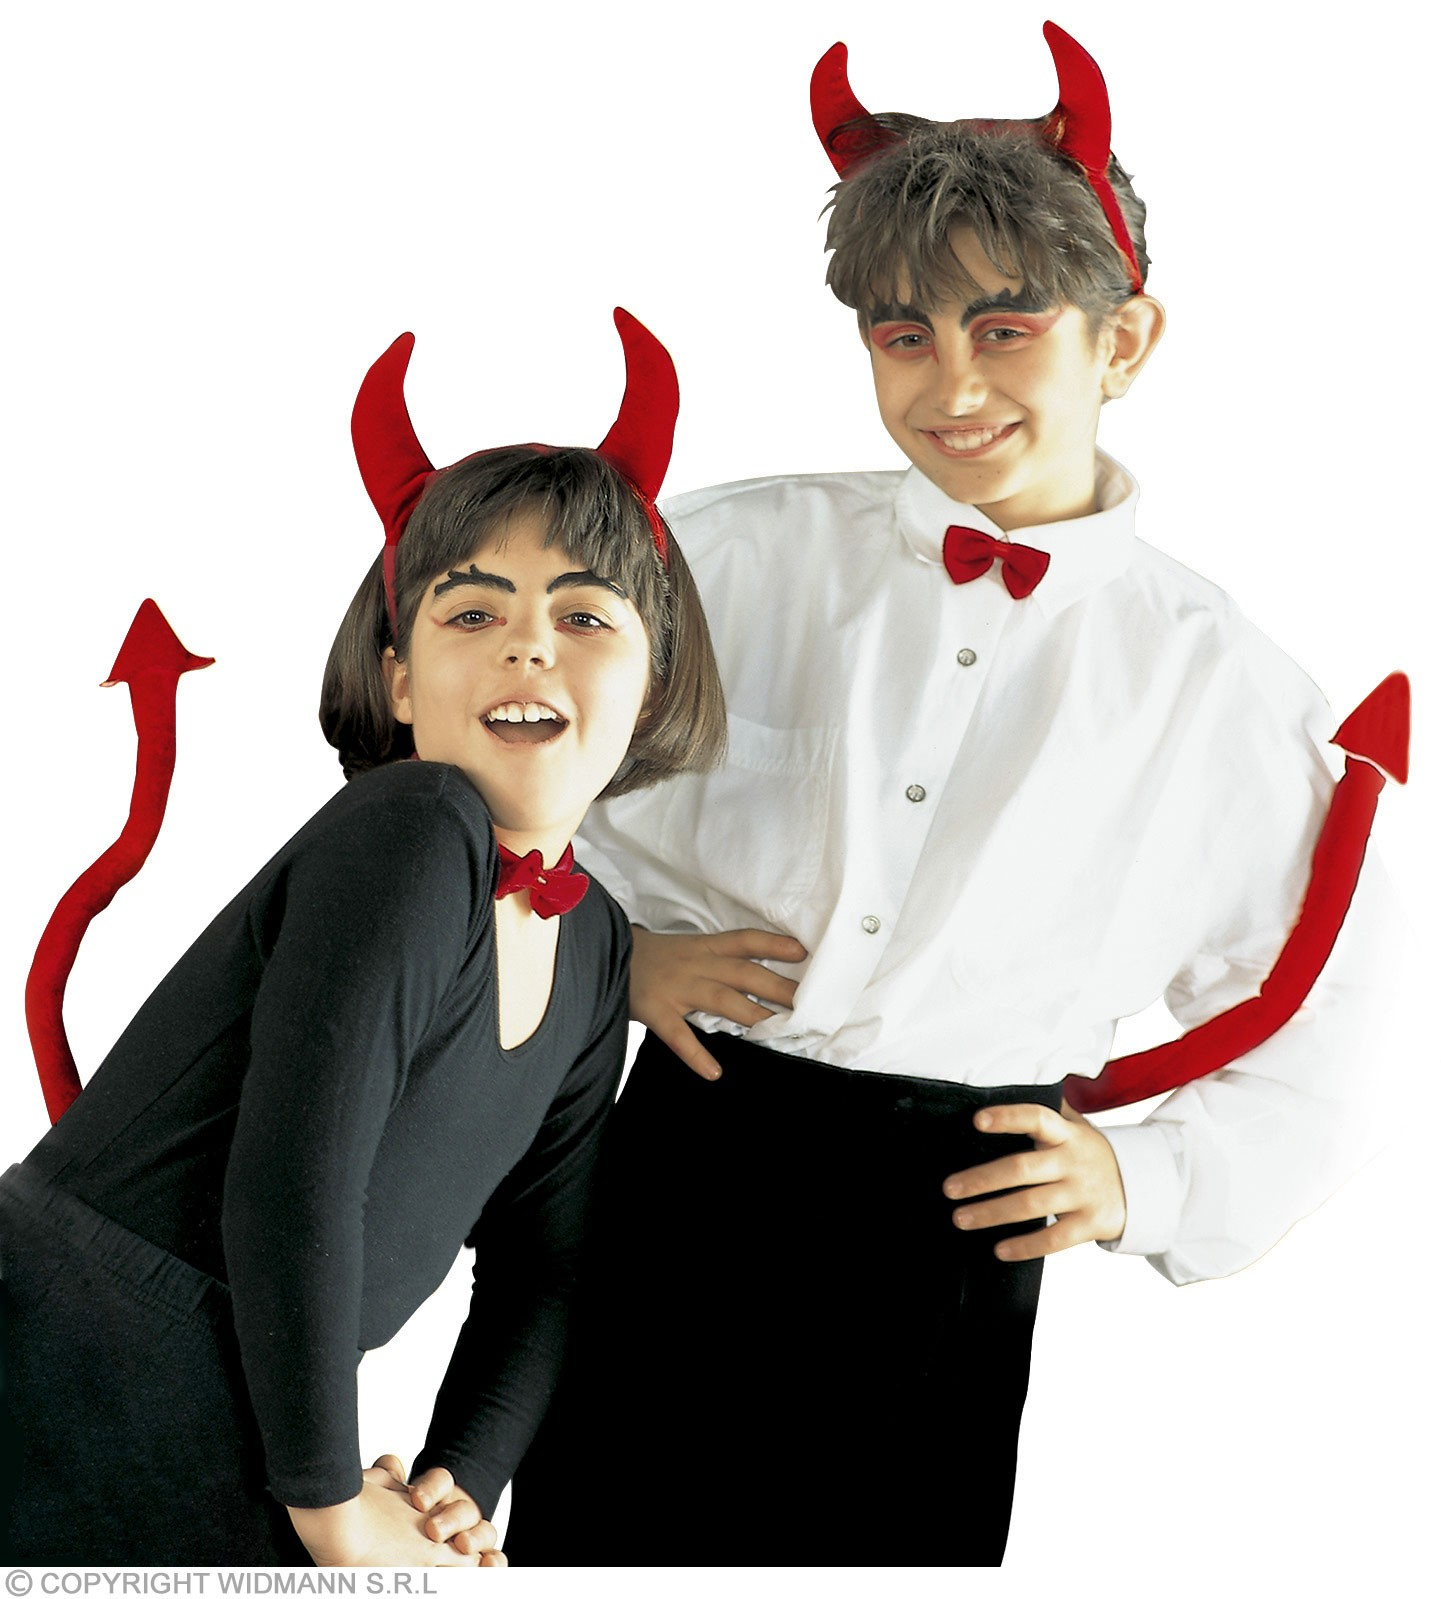 Devil Dress Up Set Unisex Child Fancy Dress Costume (Halloween)